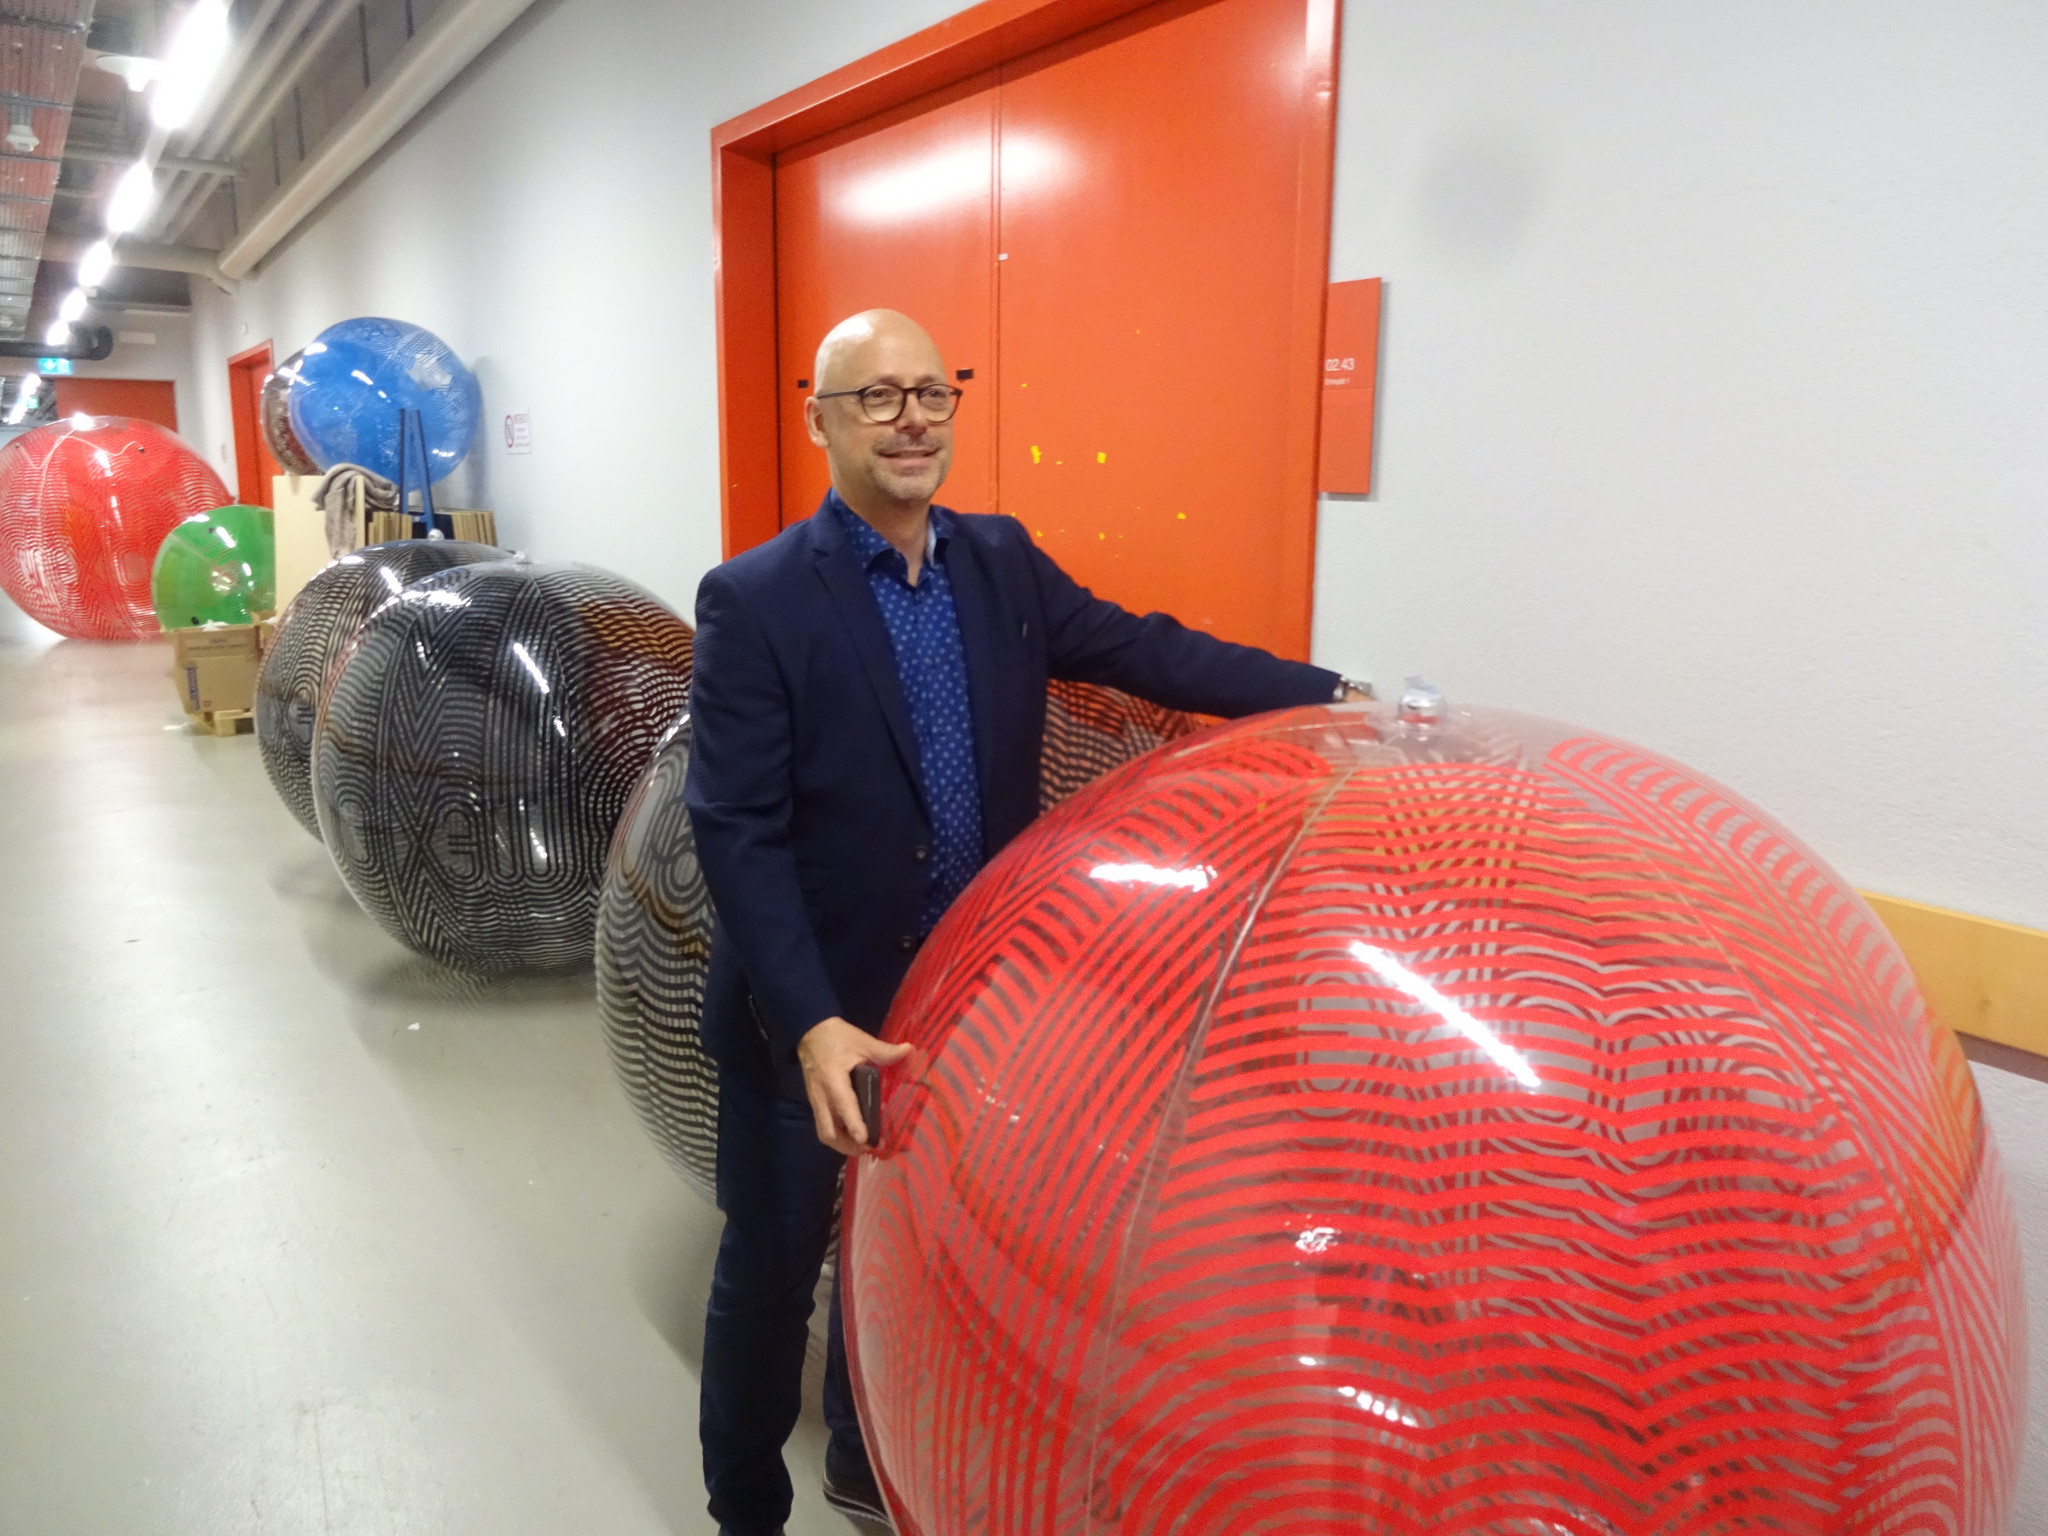 Curator Markus Osterwalder with a giant ball from Mexico 1968 before it was installed in the exhibition ©Philip Barker